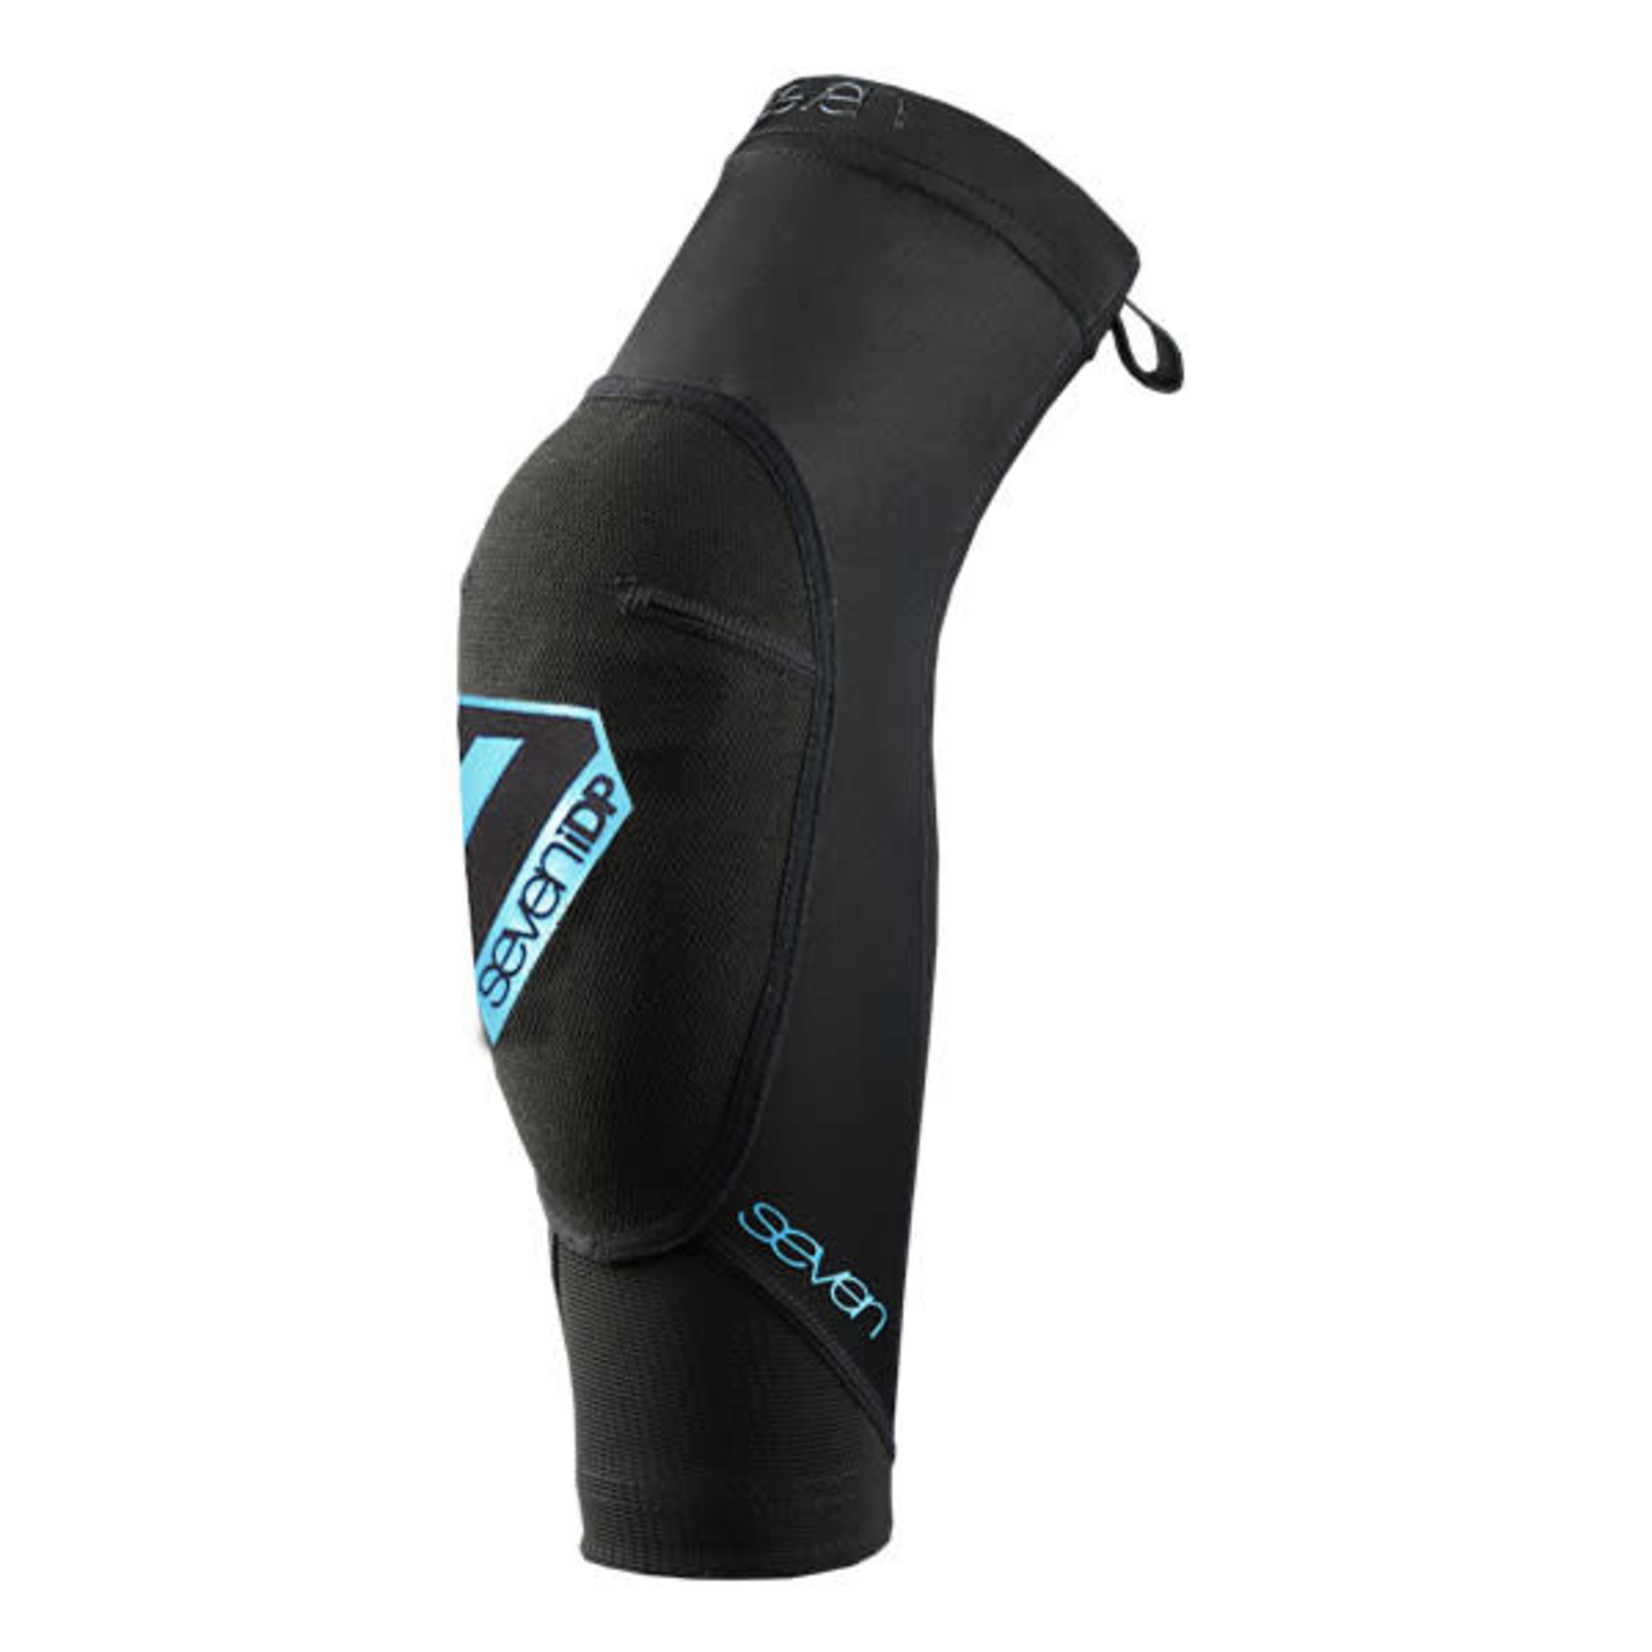 7 Protection 7 Protection - Elbow Pad - Transition Elbow